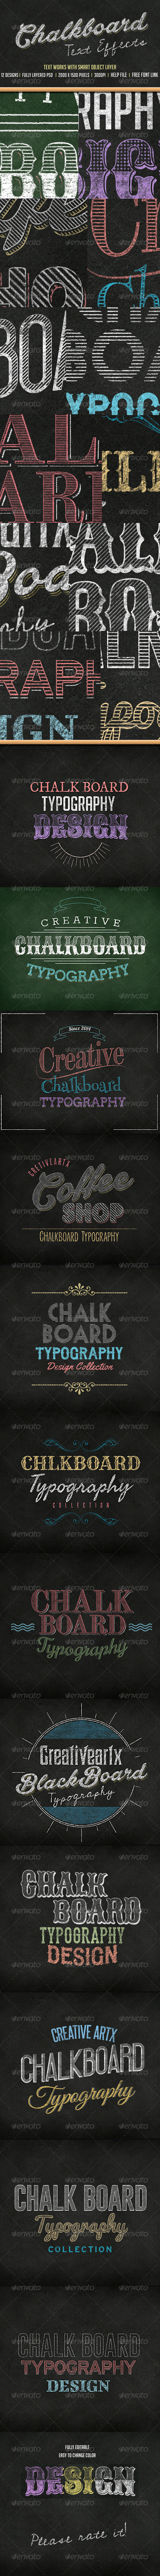 GraphicRiver Chalkboard Text 7832412